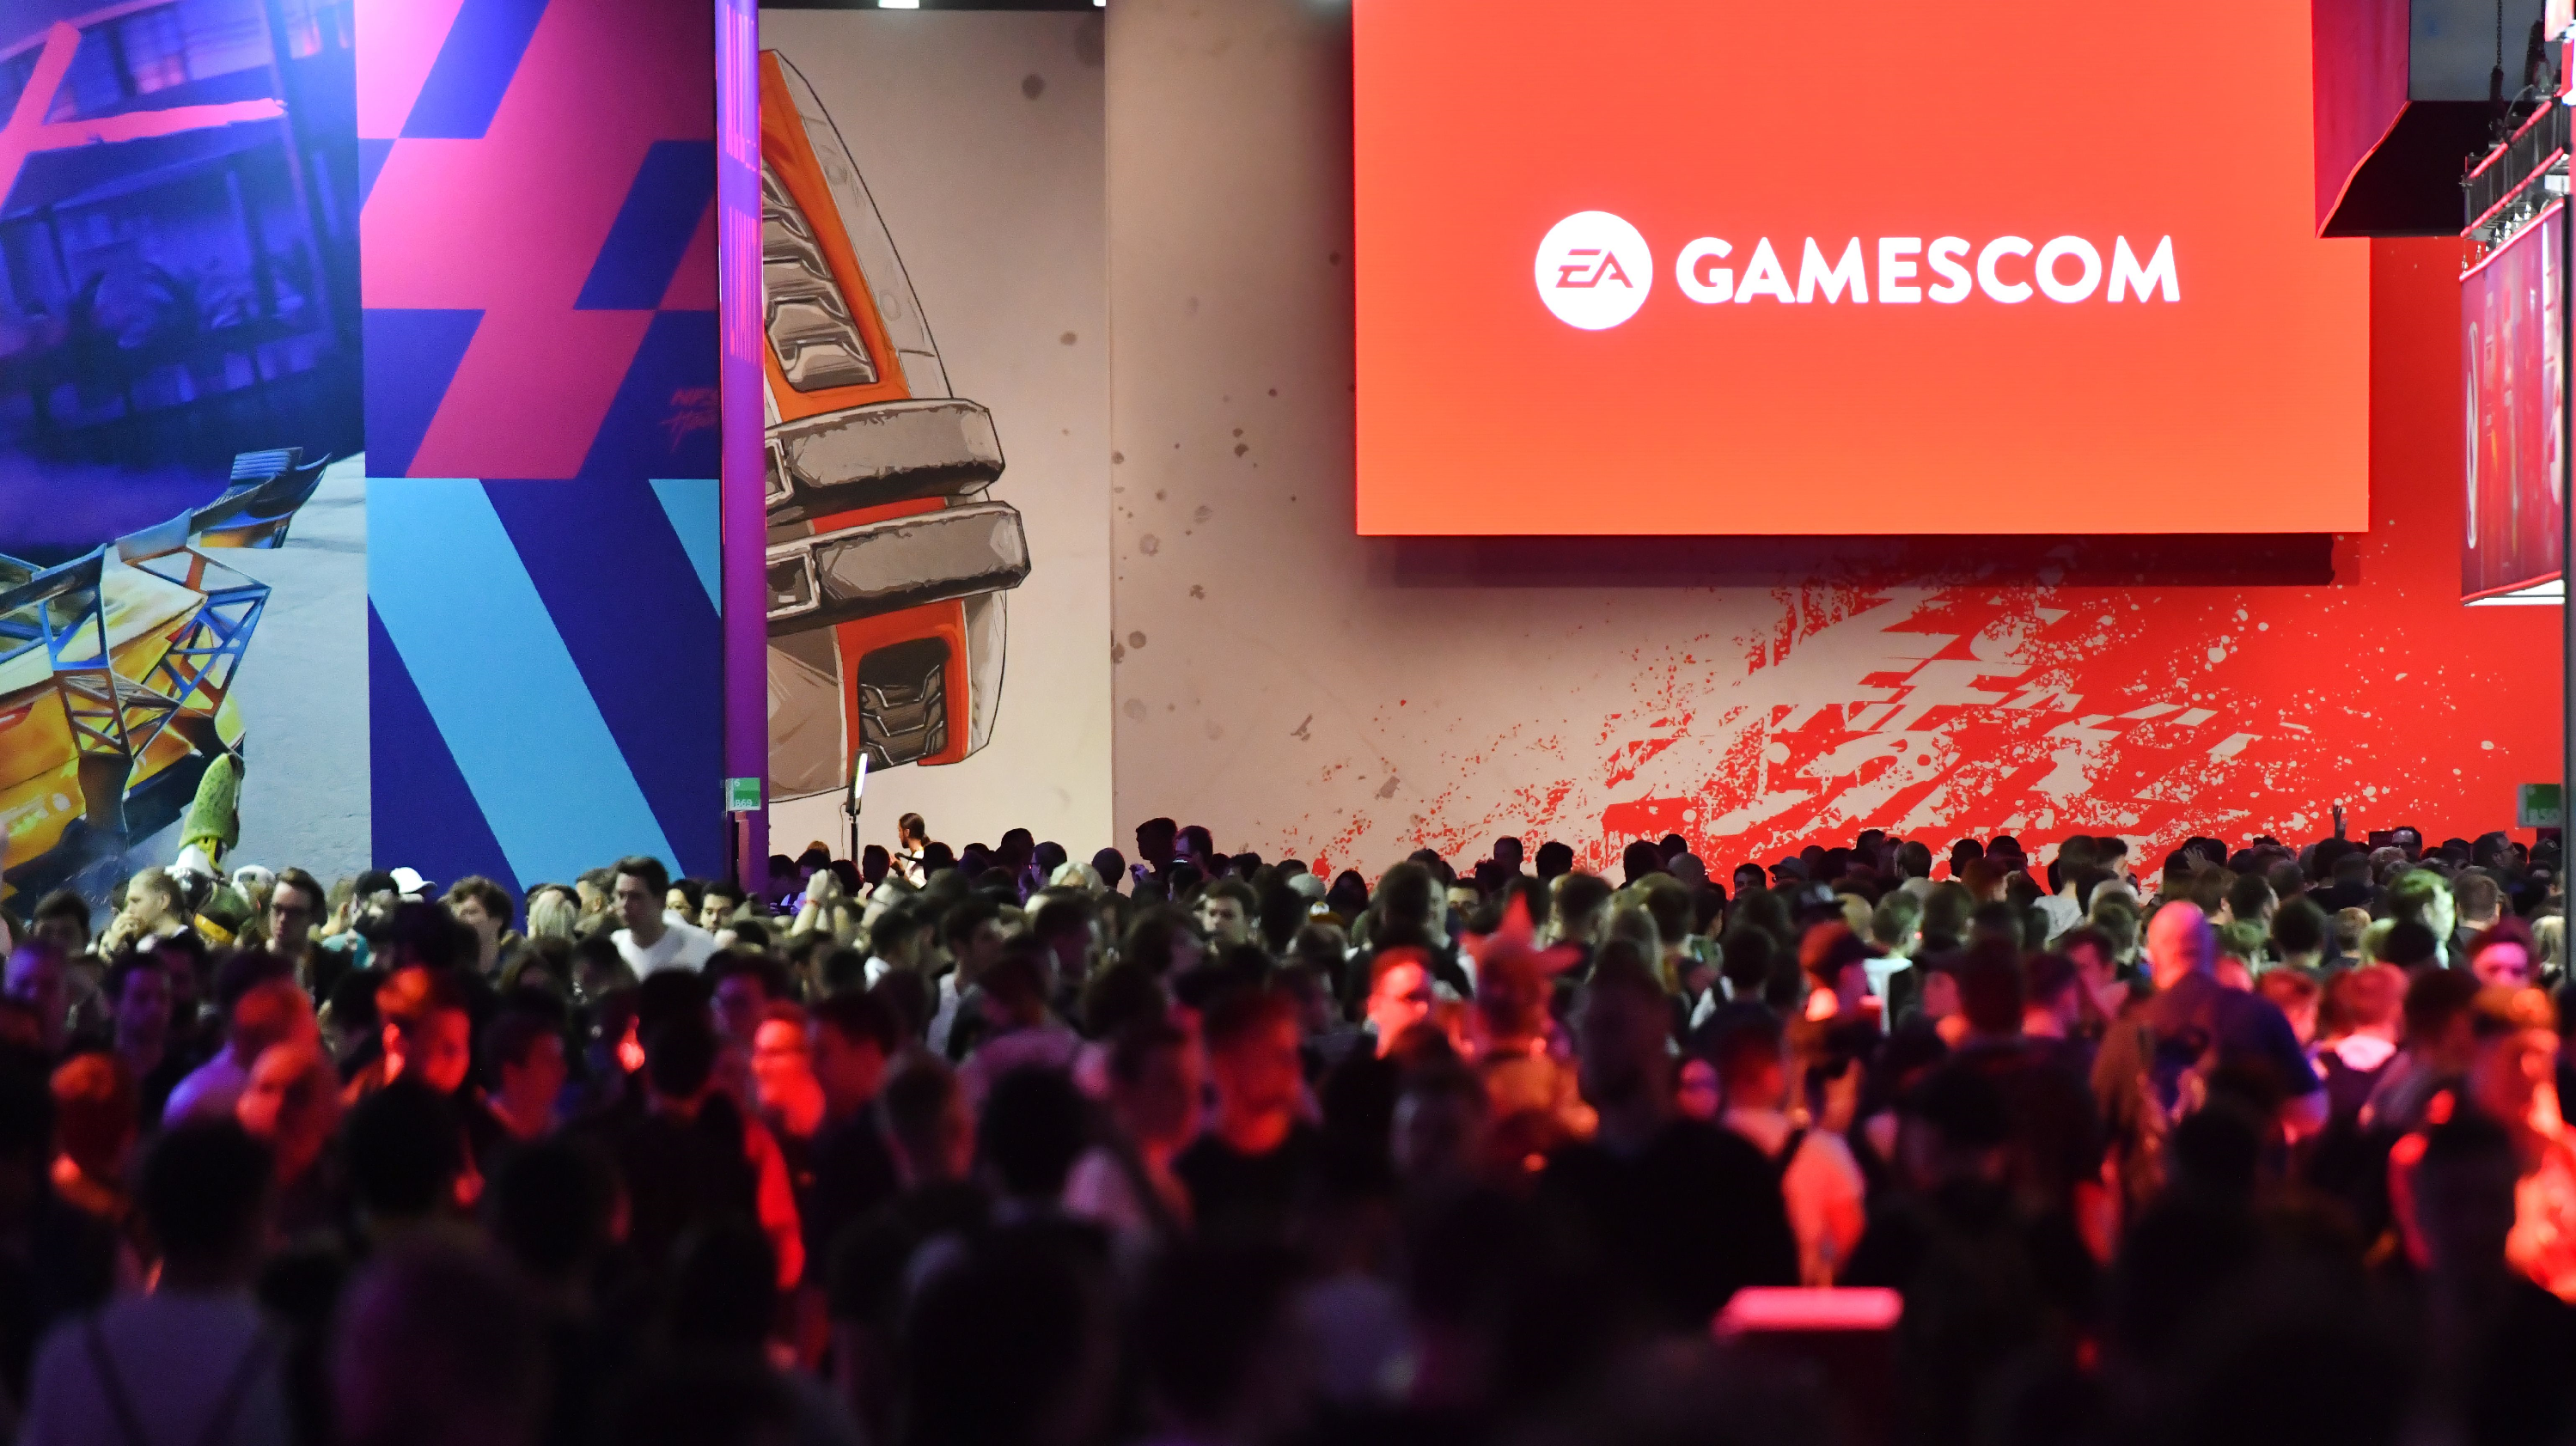 Gamescom 2020 Won't Happen In Germany, Goes Digital